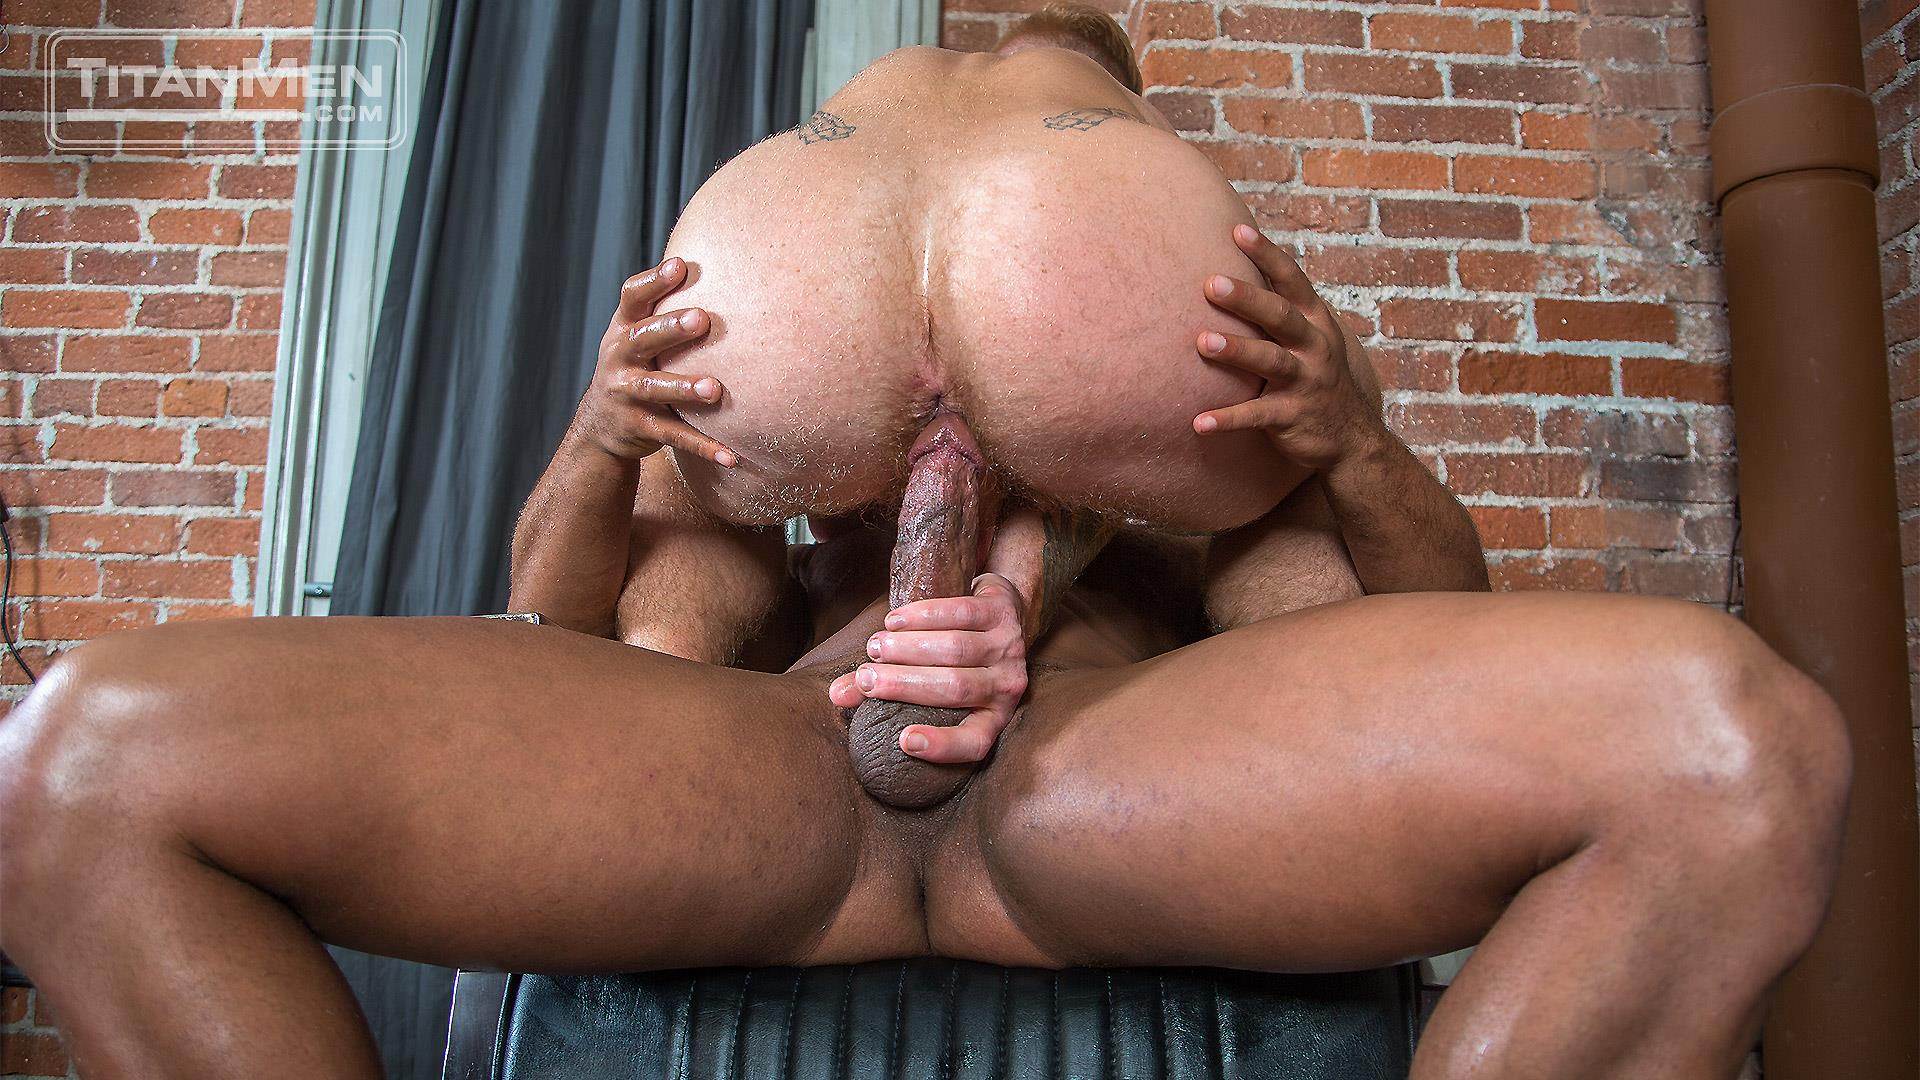 Muscular Amateur Hunks Buttfucking Deeply